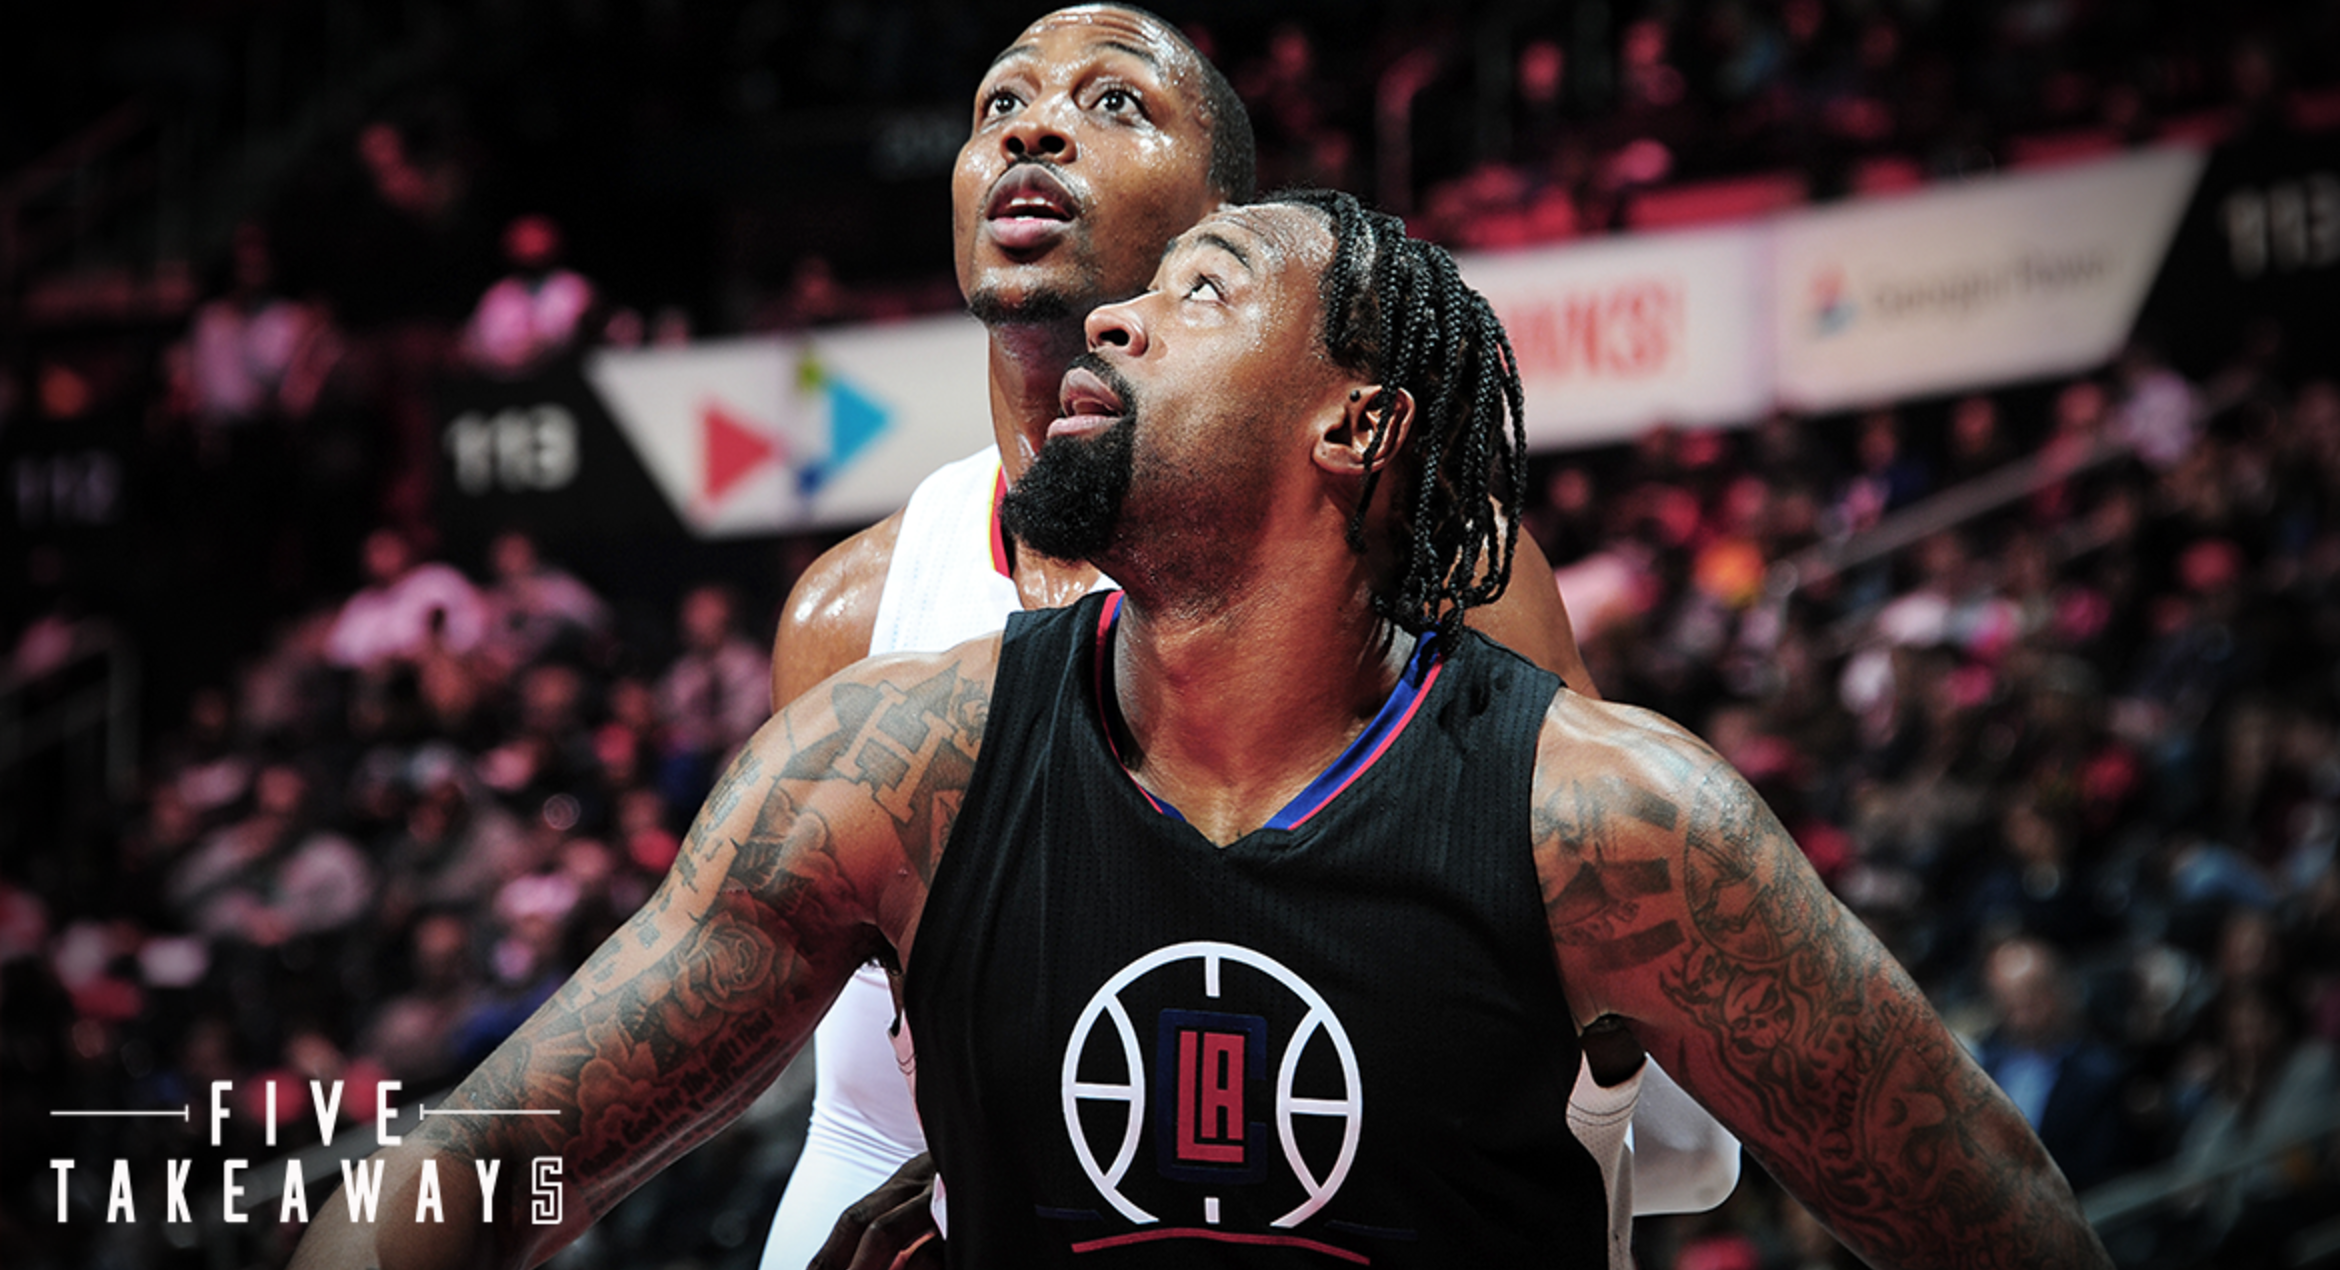 Five Takeaways: Clippers Defend Their Way Past Hawks, 115-105